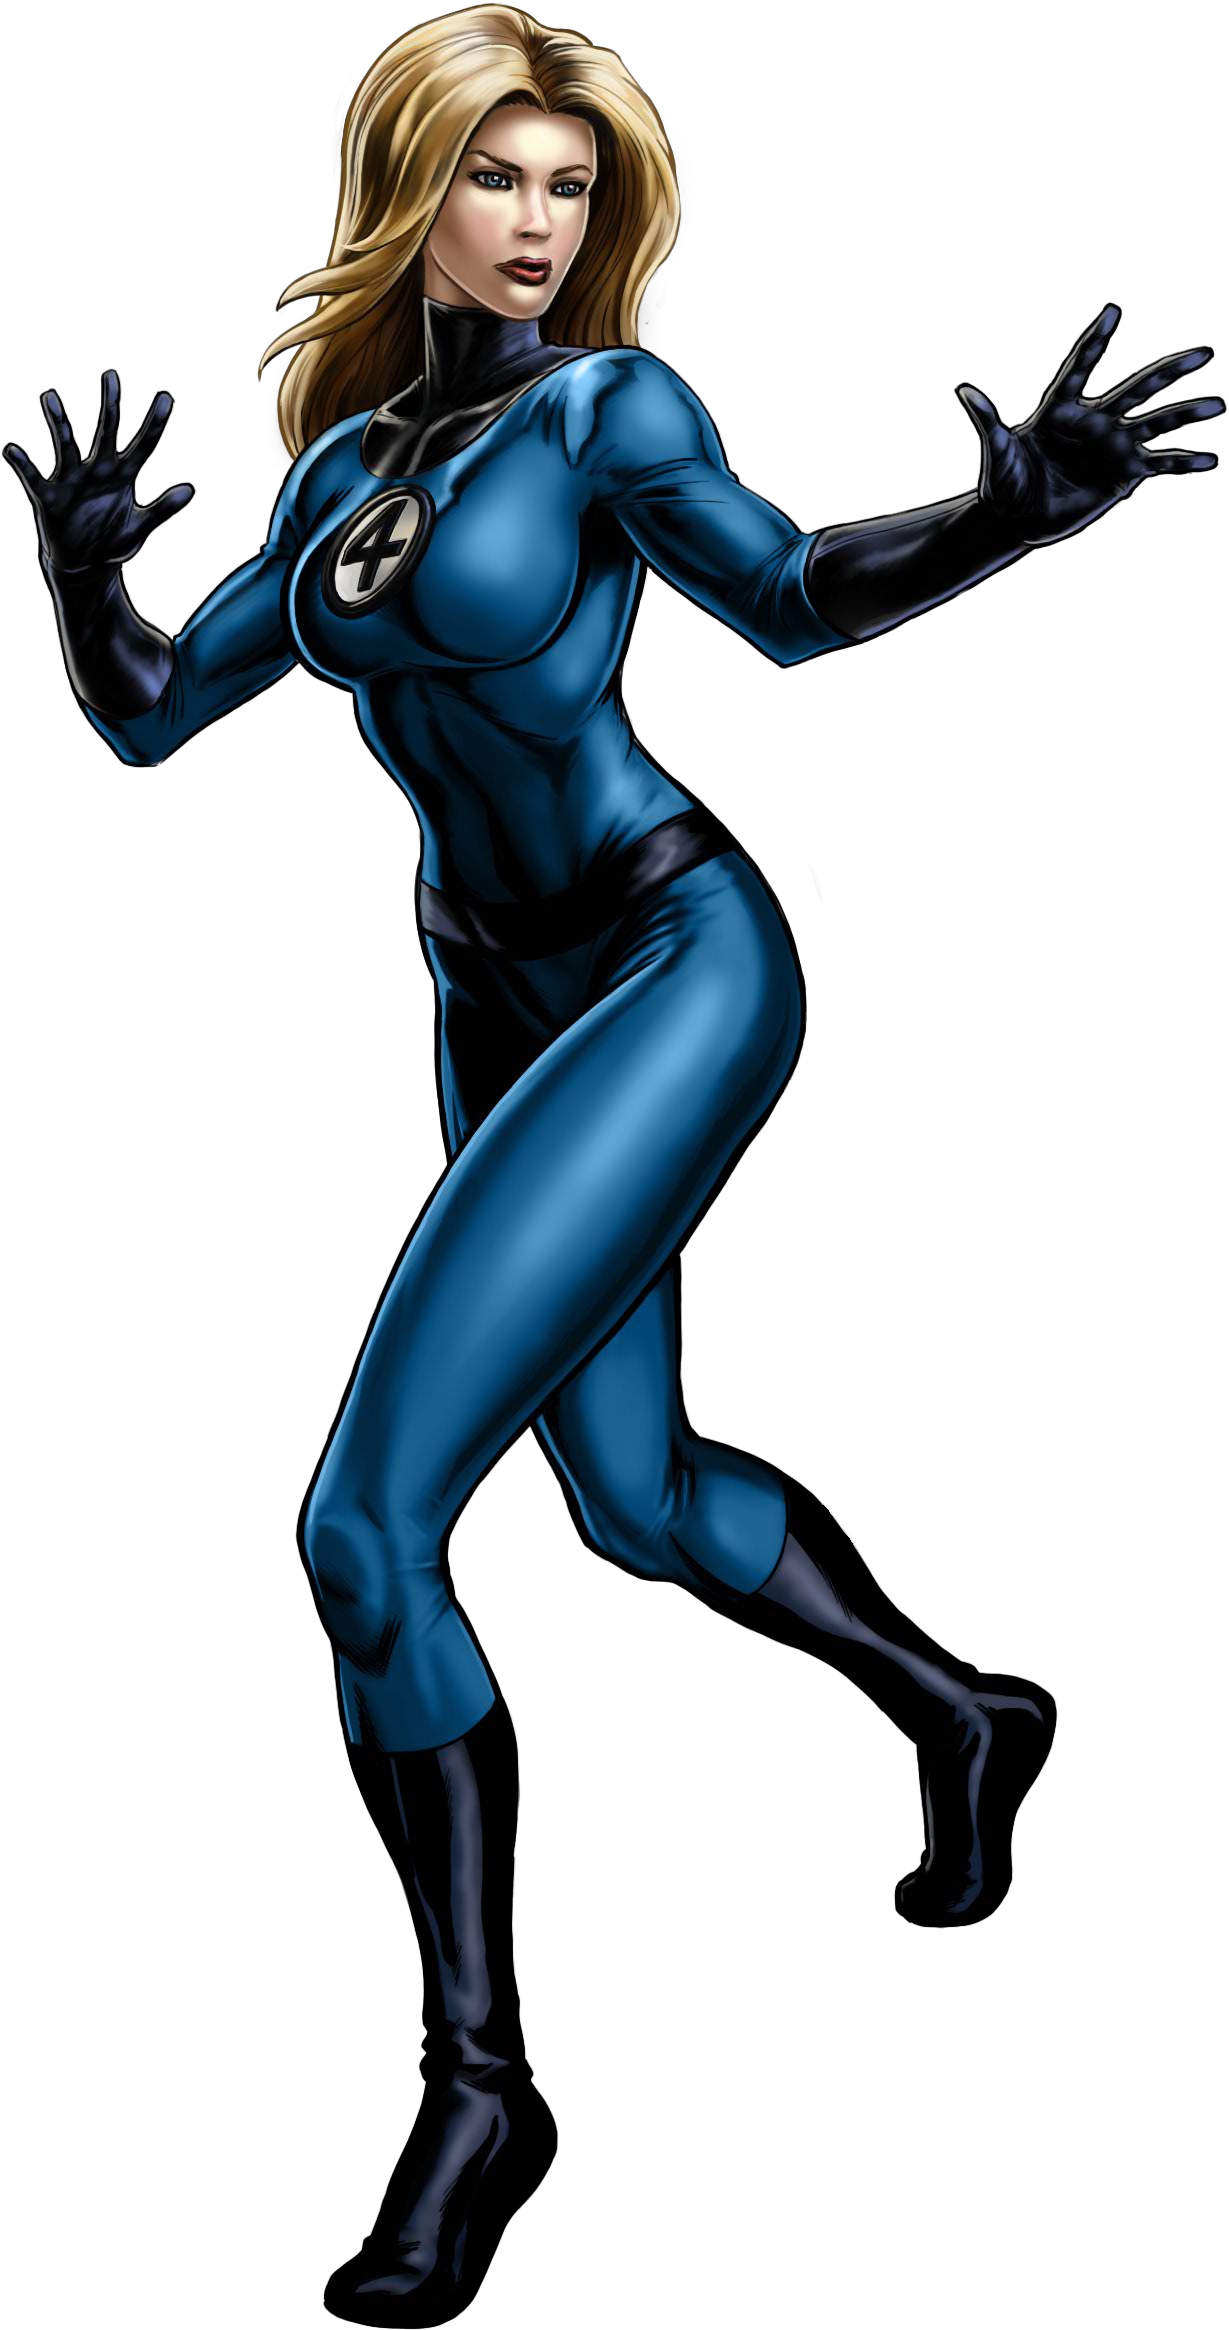 Invisible Woman Transparent Images